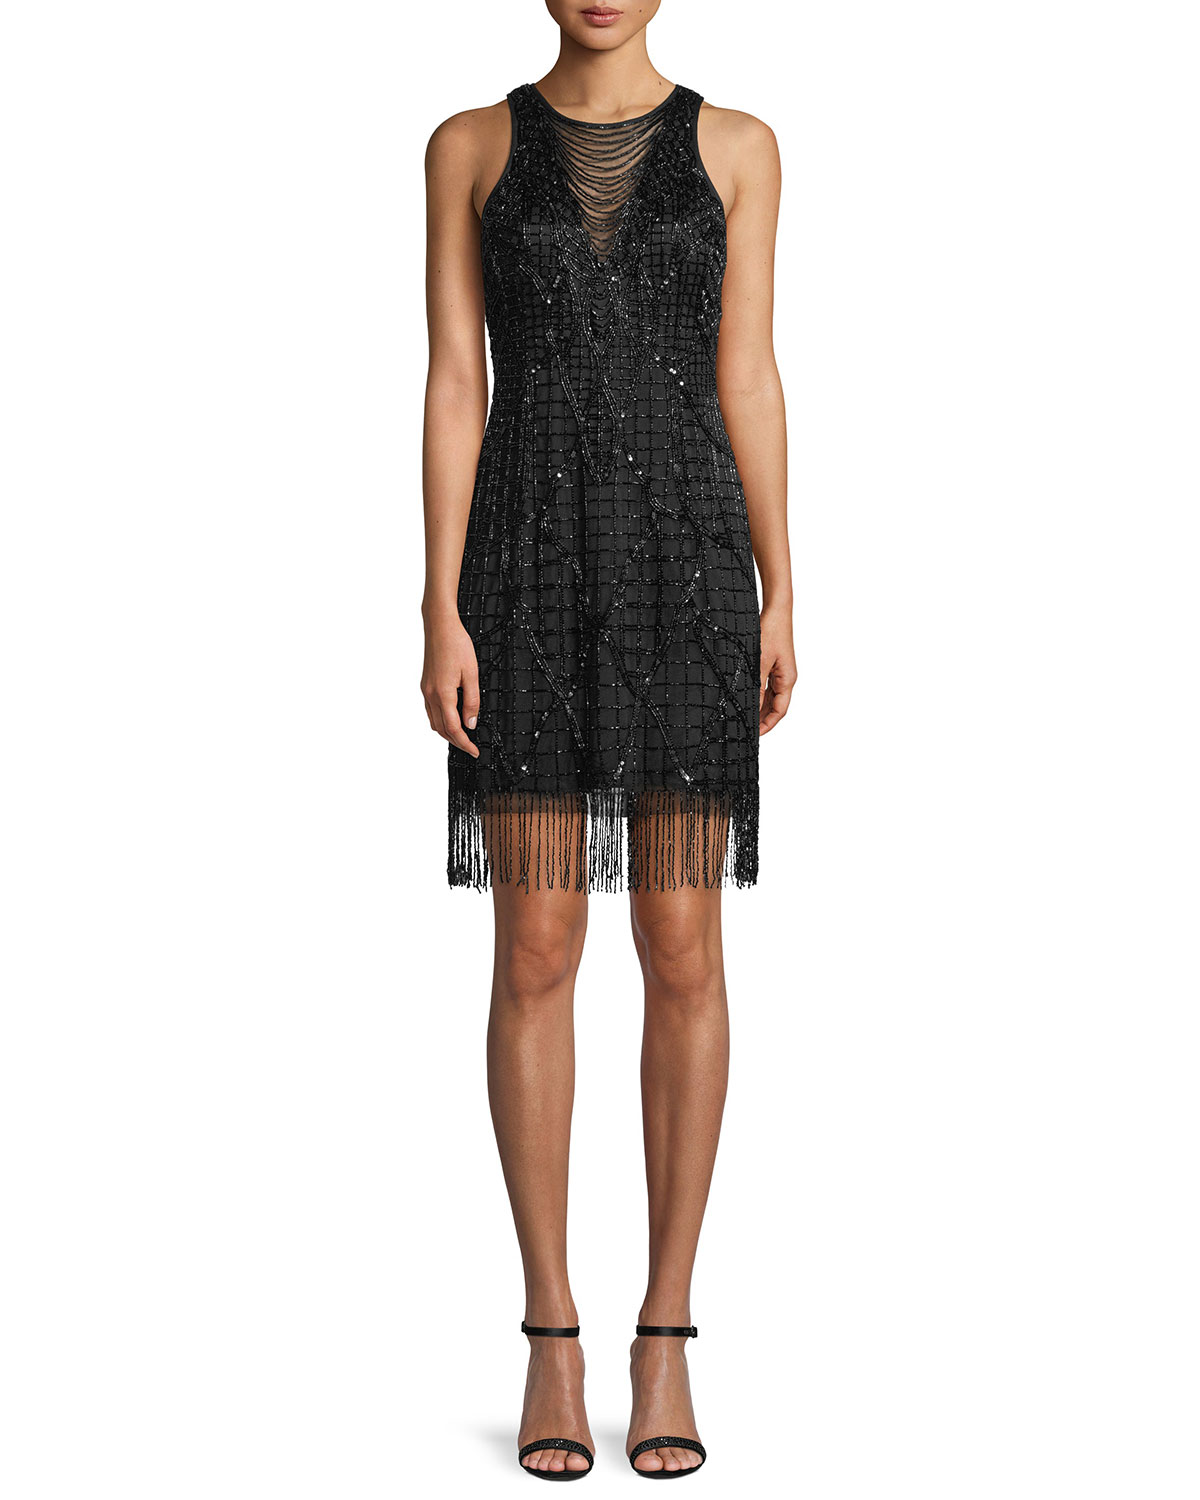 c98733ebdb01 Aidan Mattox Sleeveless Little Black Cocktail Dress w/ Beading & Fringe